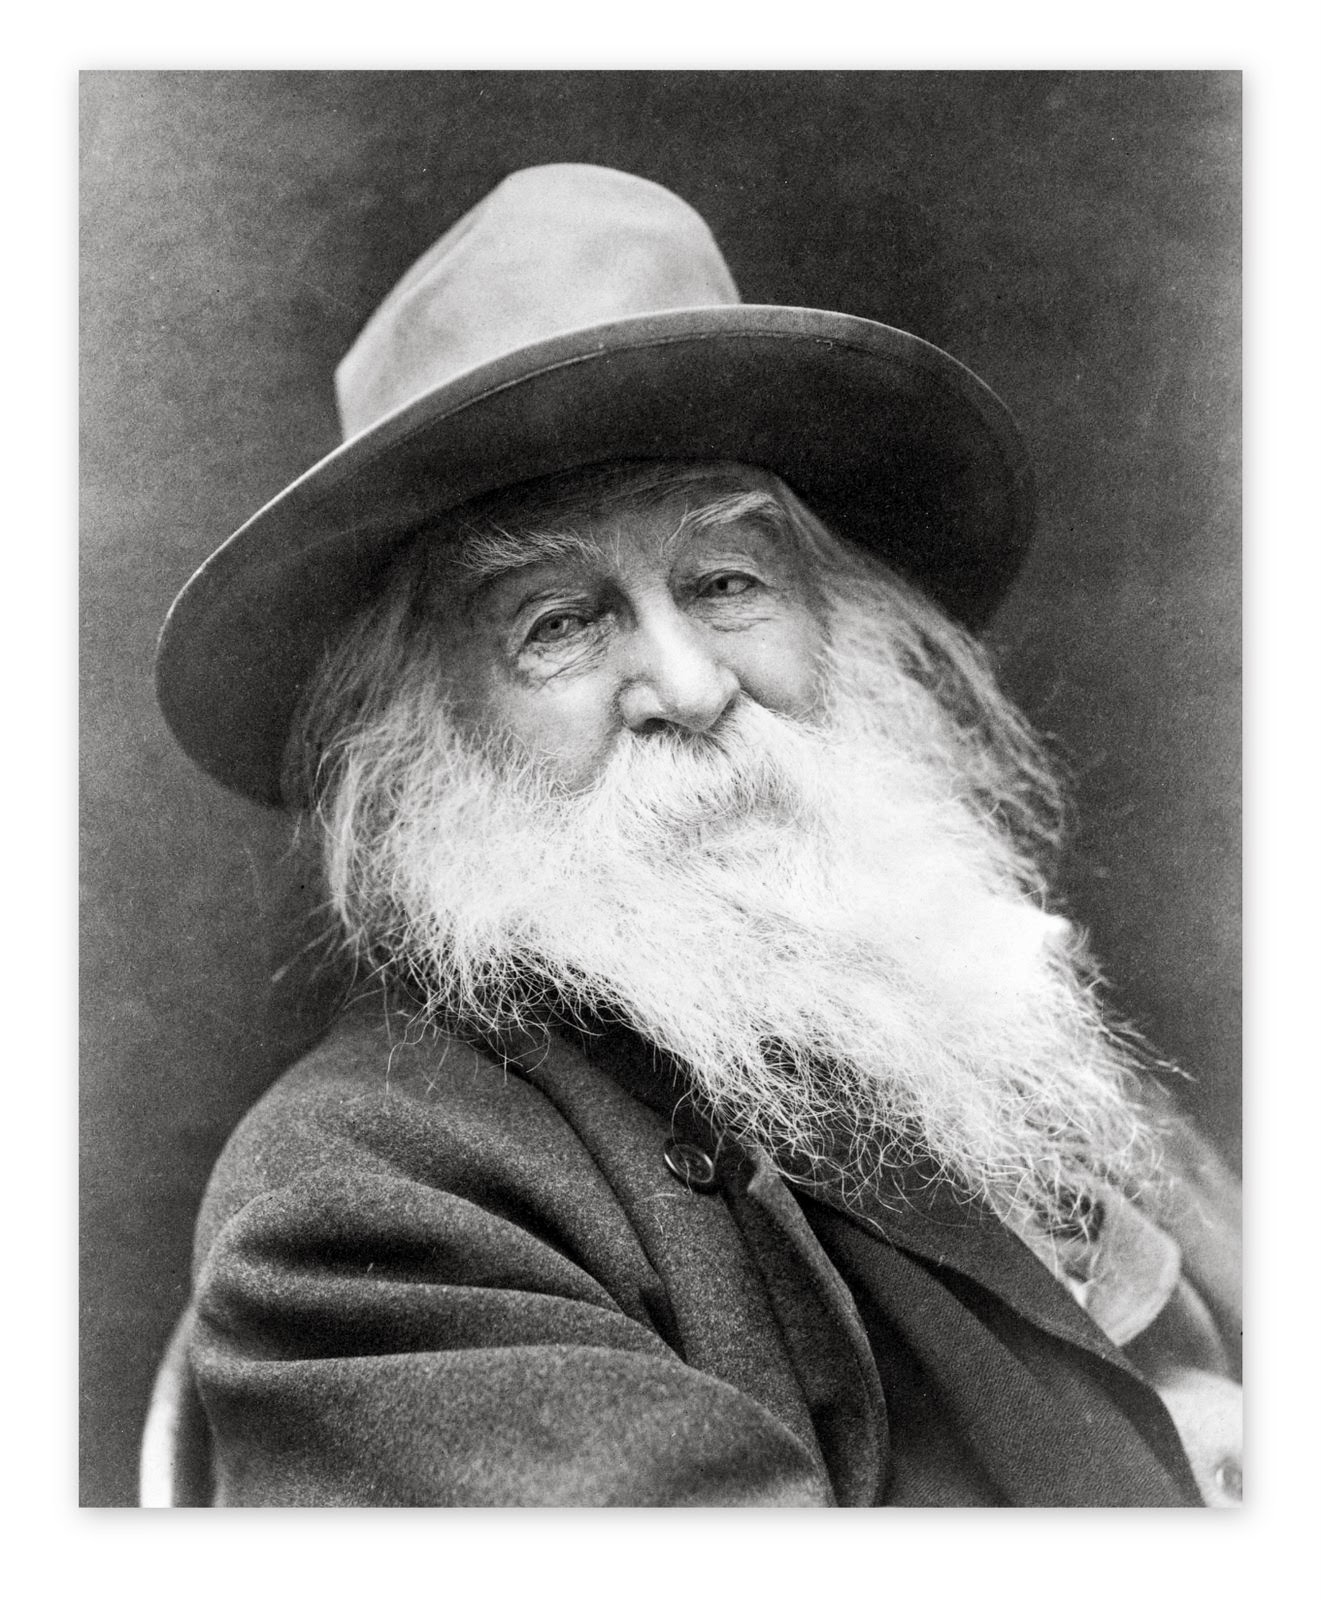 walt whittman essay Walt whitman by ed folsom and kenneth m price family origins walt whitman, arguably america's most influential and innovative poet, was born into a working class family in west hills, new york, a village near hempstead, long island, on may 31, 1819, just thirty years after george washington was inaugurated a s.